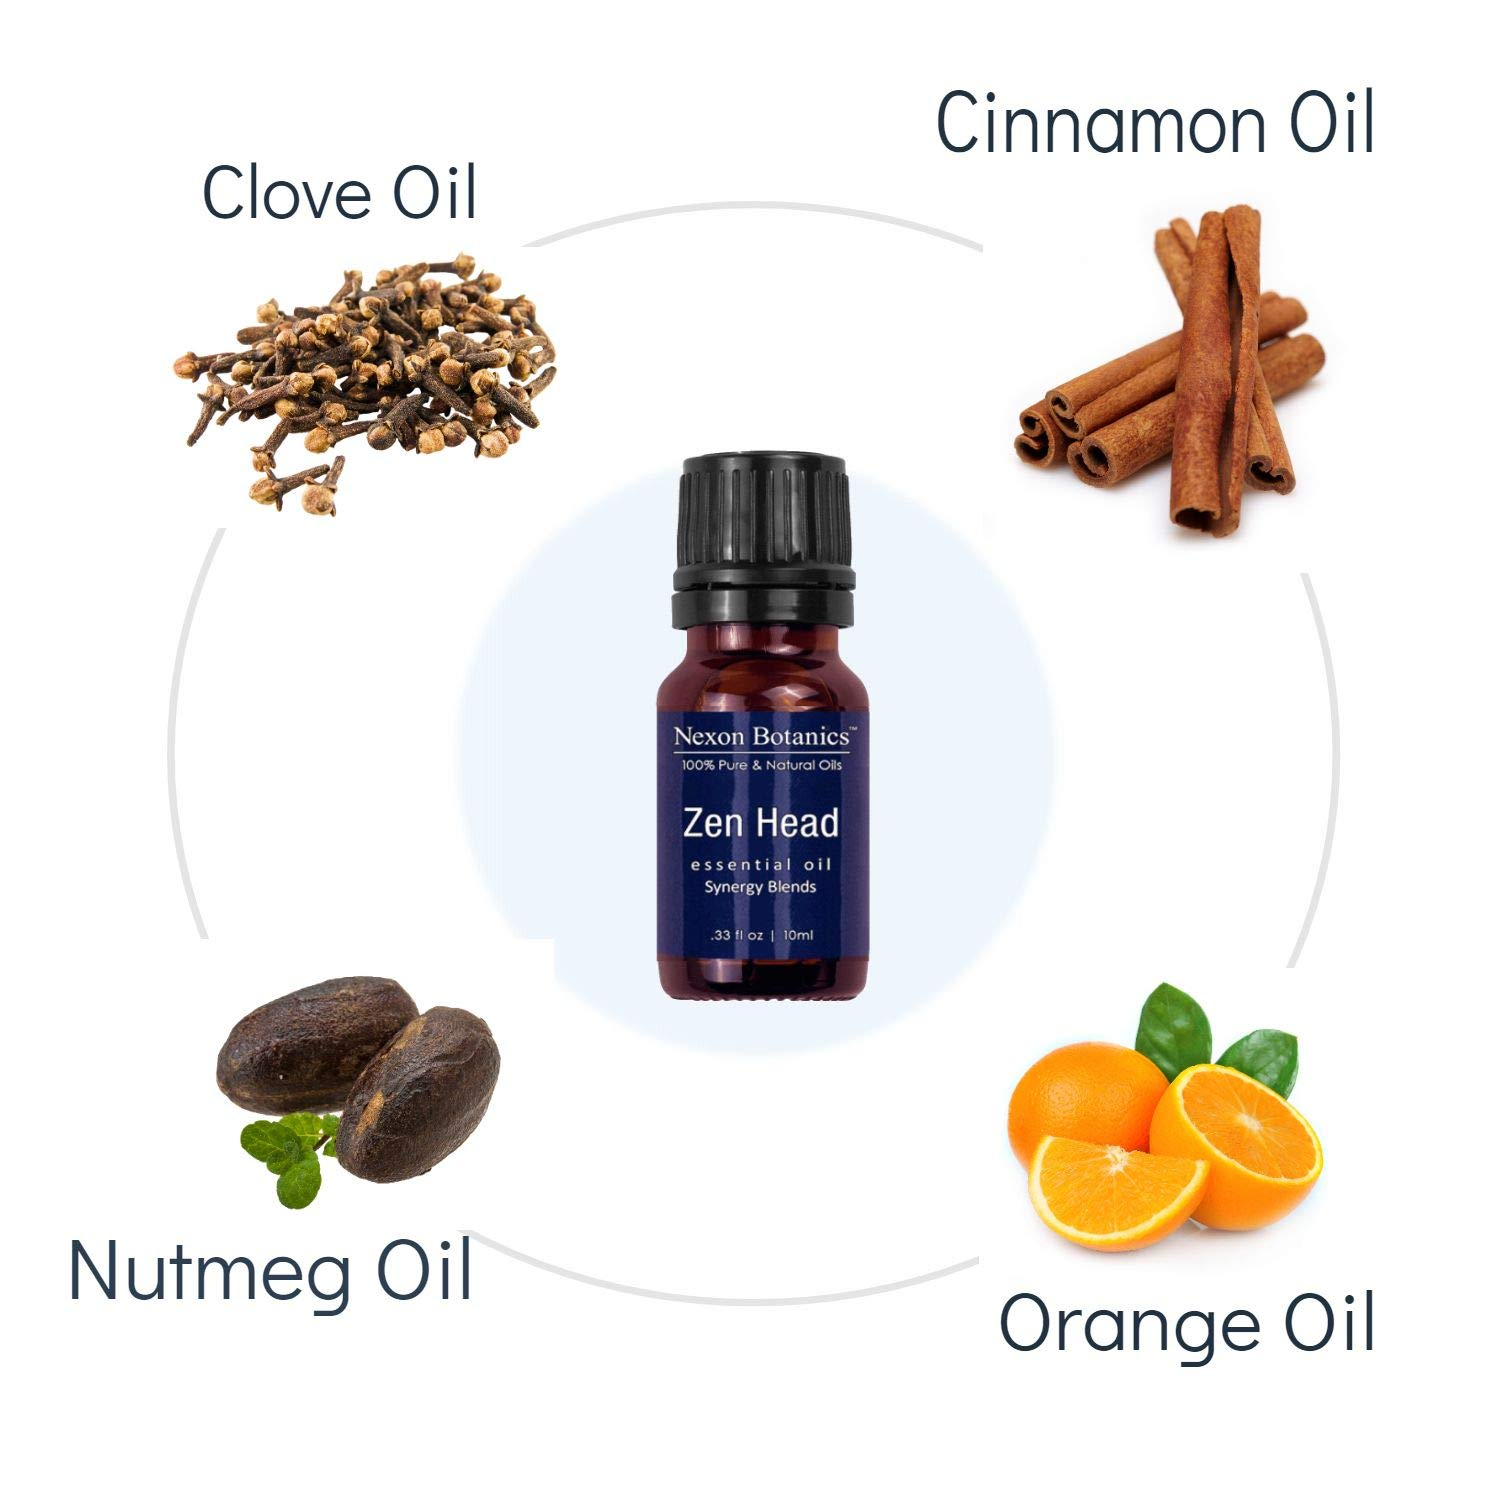 Aromatherapy Essential Oil Synergy Blend Set - 100% Pure & Natural Undiluted Therapeutic Grade Blends Include Breathe Ease, Health Plus, Zen Head, Muscle Ease, Zen Sleep, Immune Boost Oils 6 x 10 ml by Nexon Botanics (Image #5)